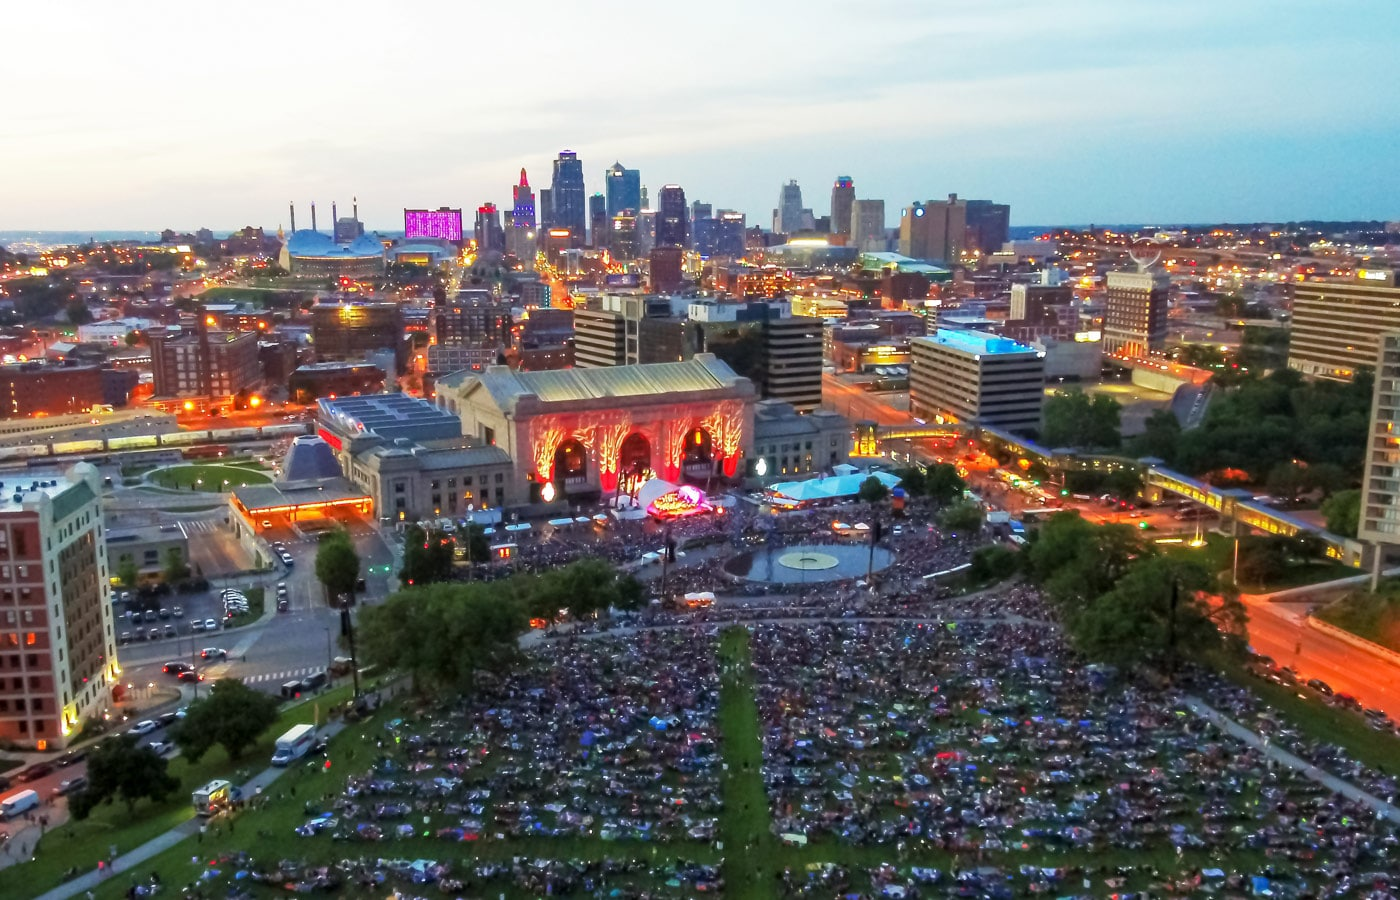 Photo of Union Station with thousands of people on the lawn of the WWI memorial at the Bank of America Celebration at the Station presented by the Kansas City Symphony